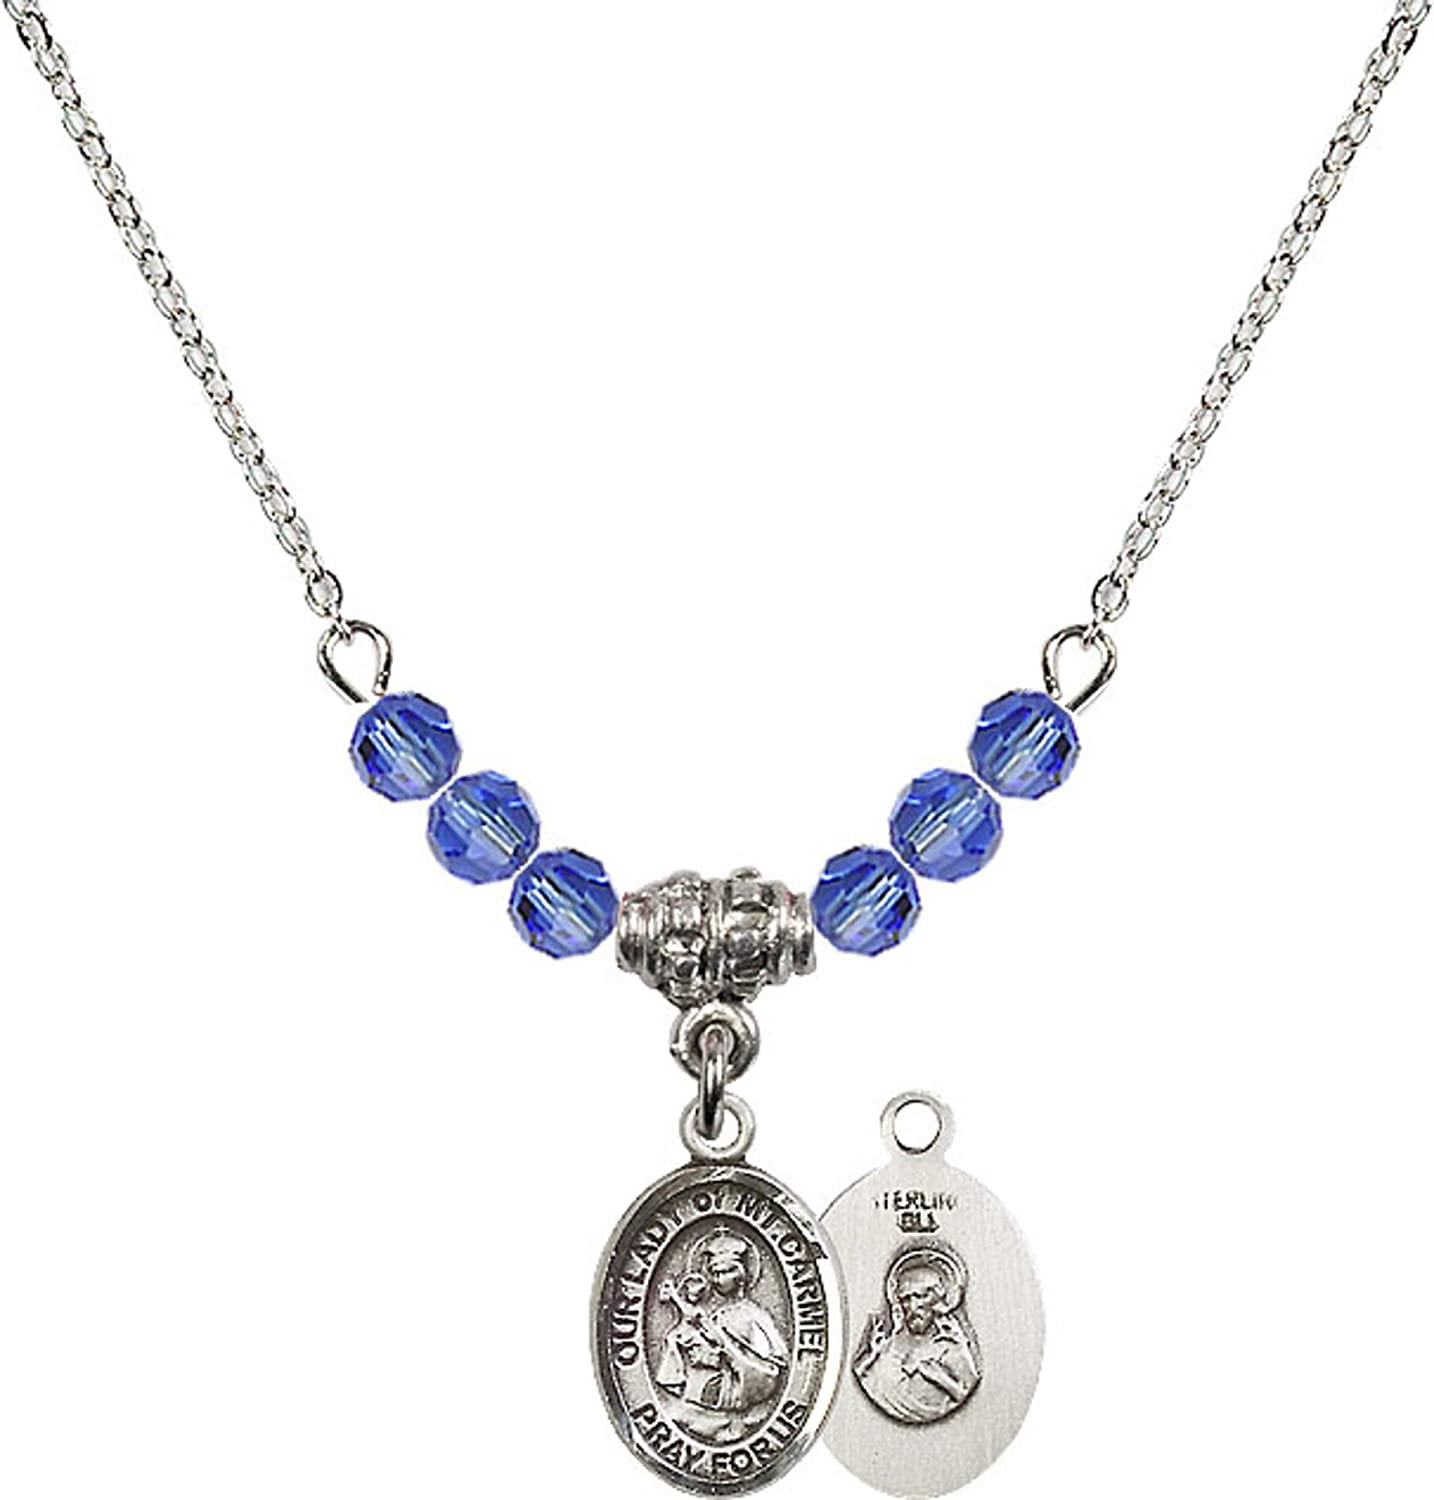 Bonyak Jewelry 18 Inch Rhodium Plated Necklace w// 4mm Blue September Birth Month Stone Beads and Our Lady of Mount Carmel Charm